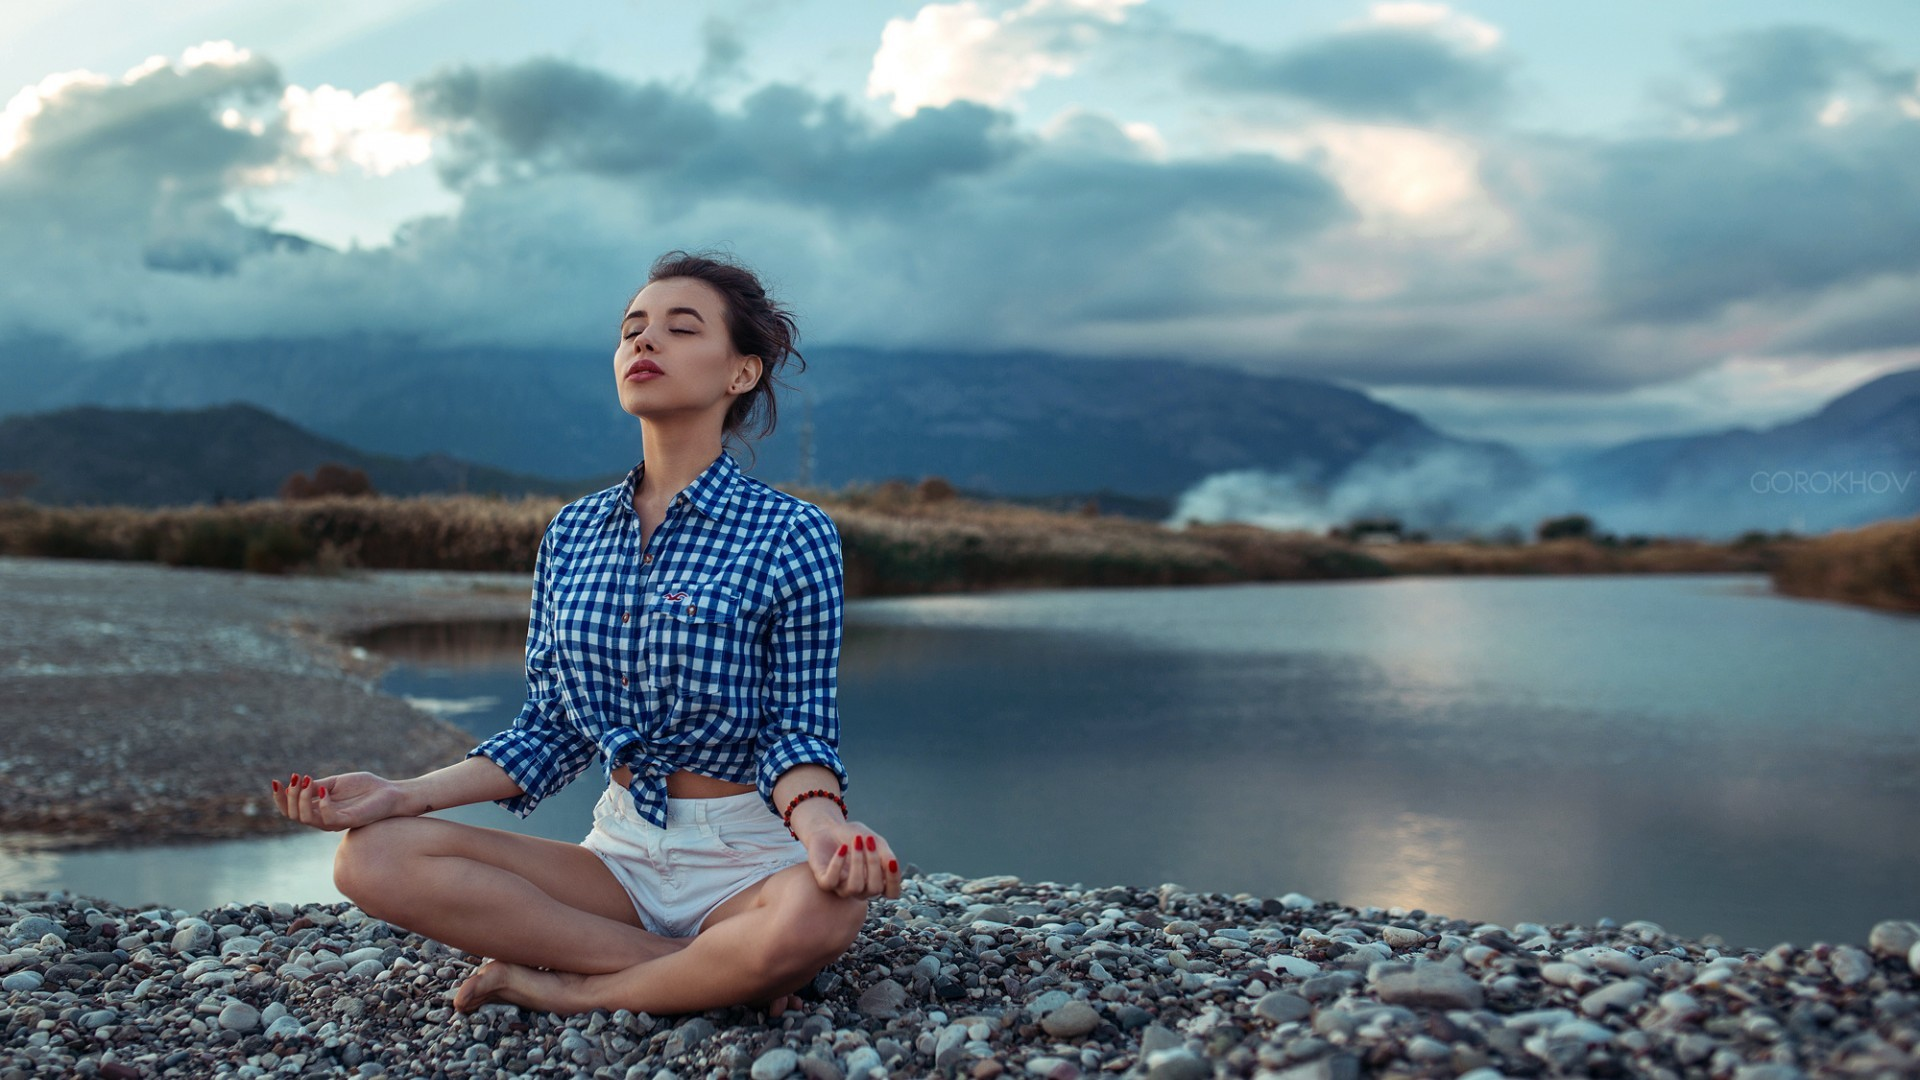 1920x1080 yoga girl sitting on a stones-river relaxing the sunshine feeling beautiful  wallpaper for desktop